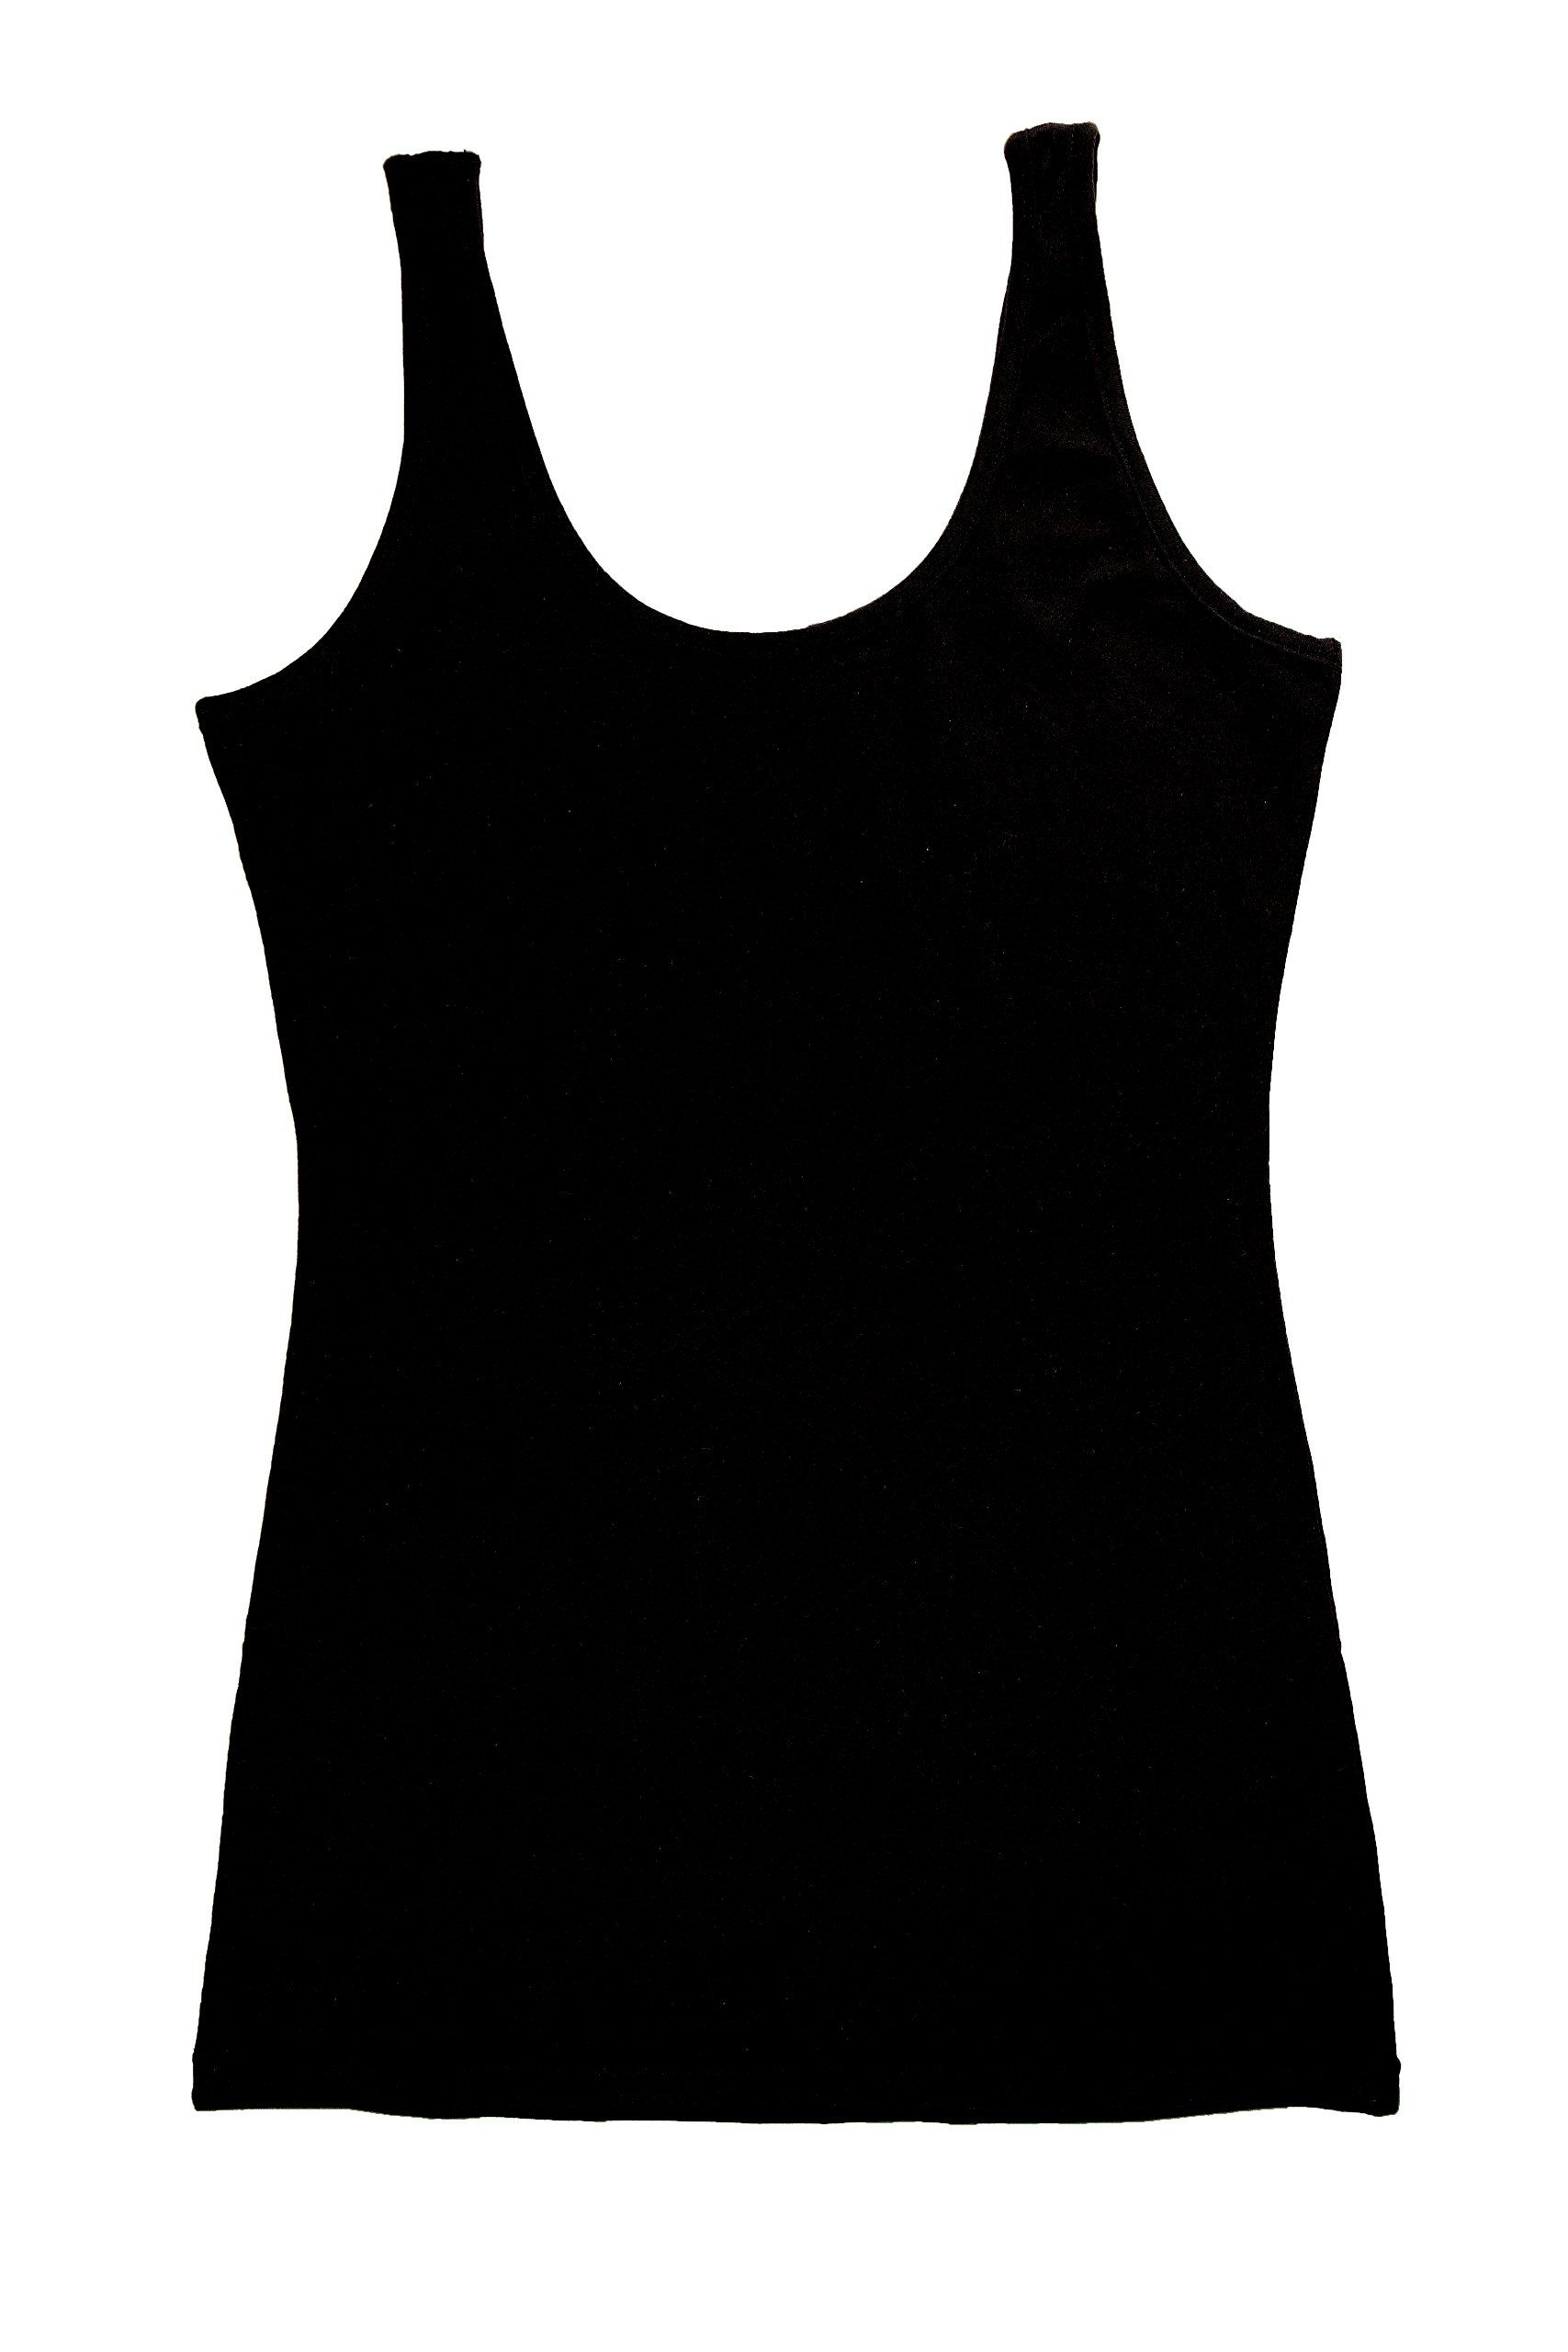 441376a00da TREELANCE Spiritual Yoga Tank Top Womens Yoga Tops Eco Friendly Cotton Yoga  Shirts. Organic Workout Yoga Tank Tops For Women. Plain Black XLarge      You can ...